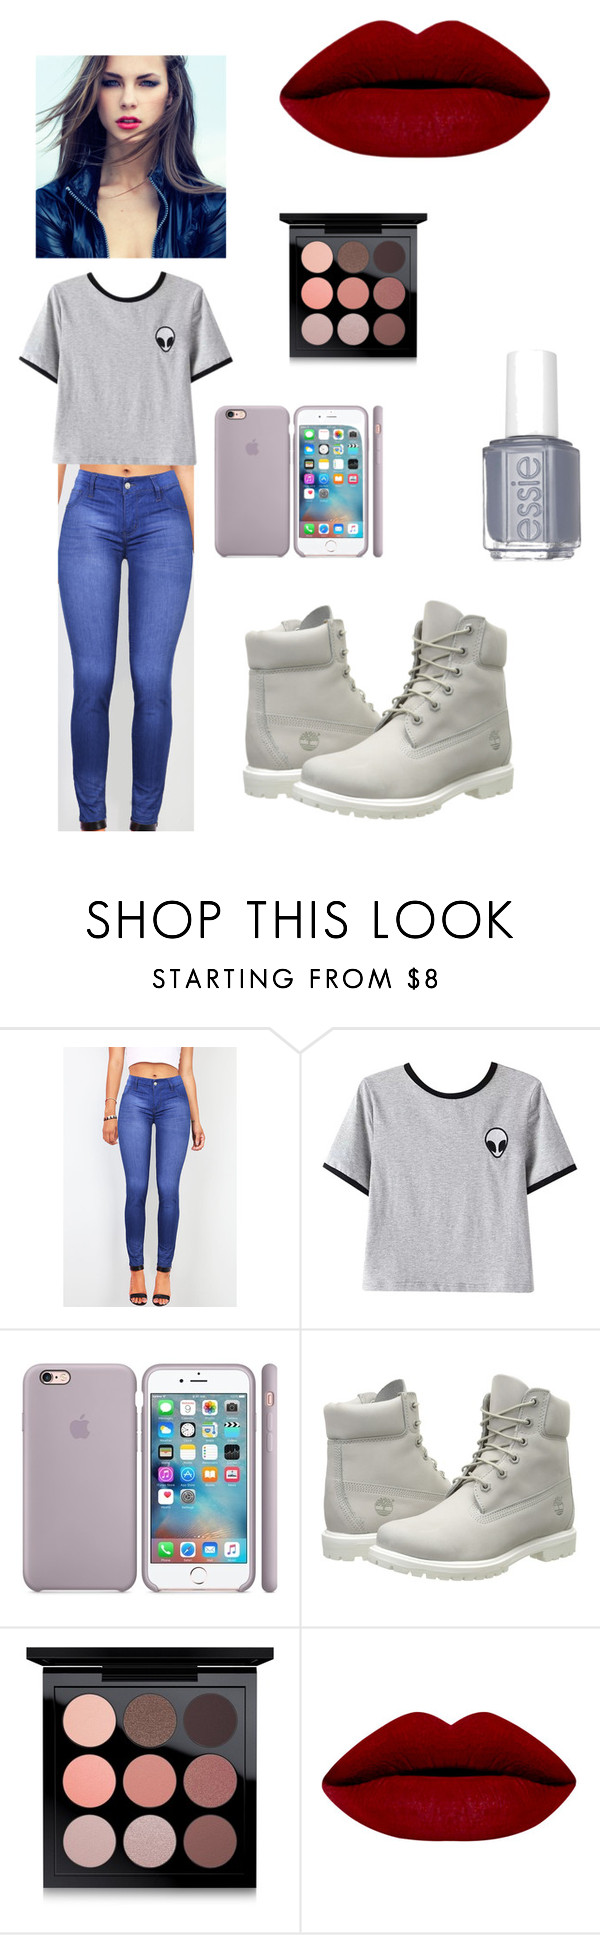 """School Inspired"" by emmasartorius on Polyvore featuring Chicnova Fashion, Timberland, MAC Cosmetics and Essie"